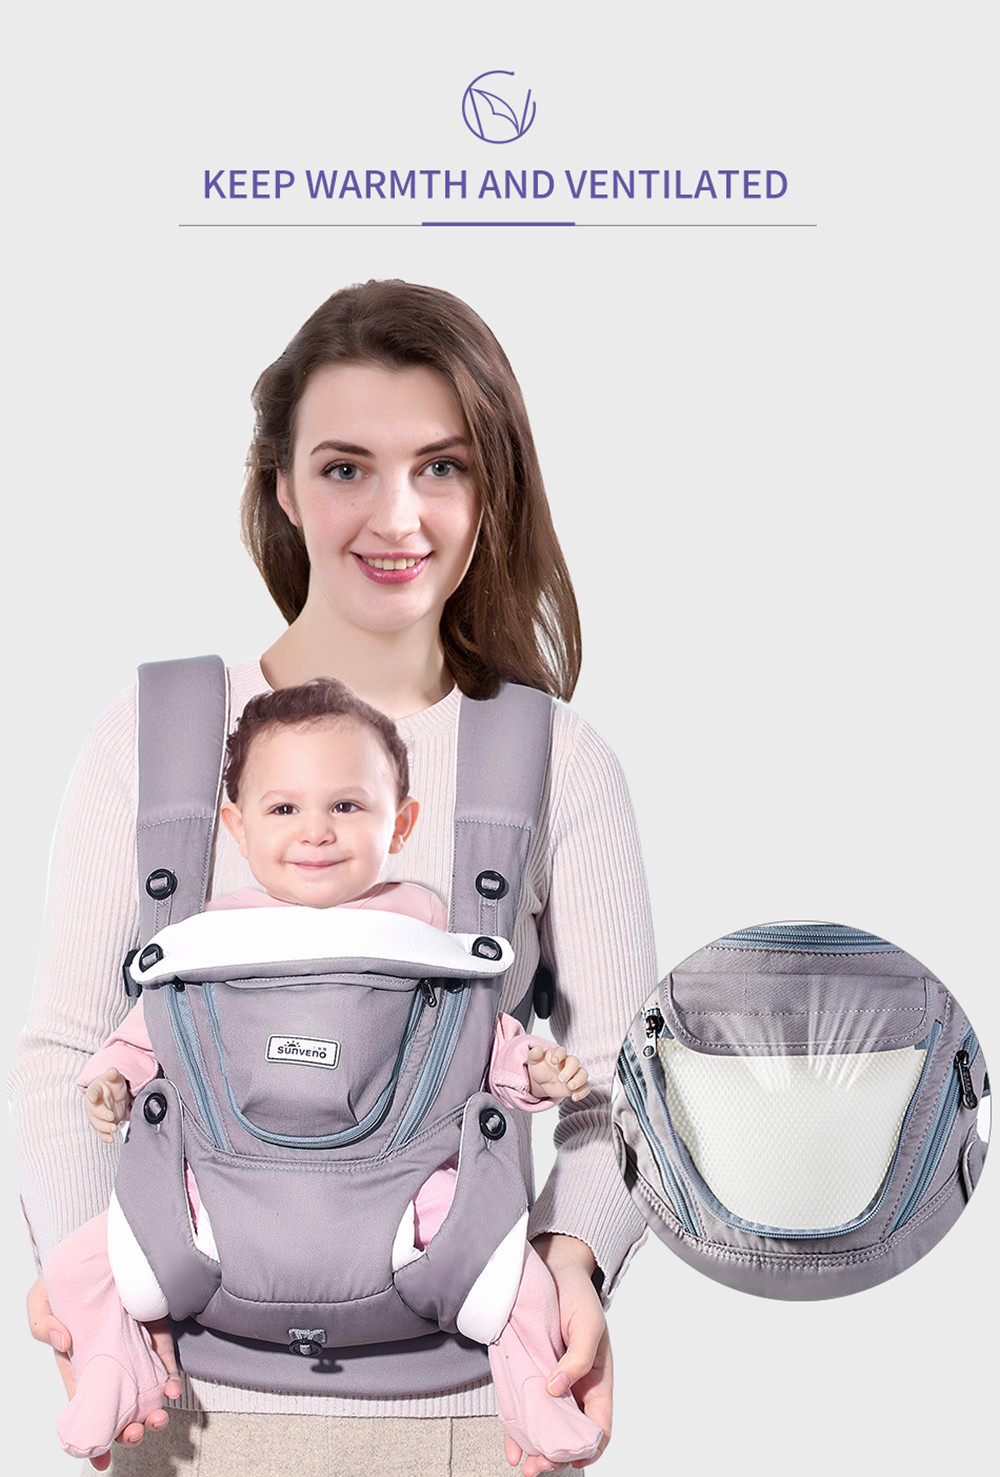 bec707068b75 Taille du paquet (L x P x H)  20.00 x 25.00 x 20.00 cm   7.87 x 9.84 x 7.87  inches. Liste d emballage  1 x Baby Carrier